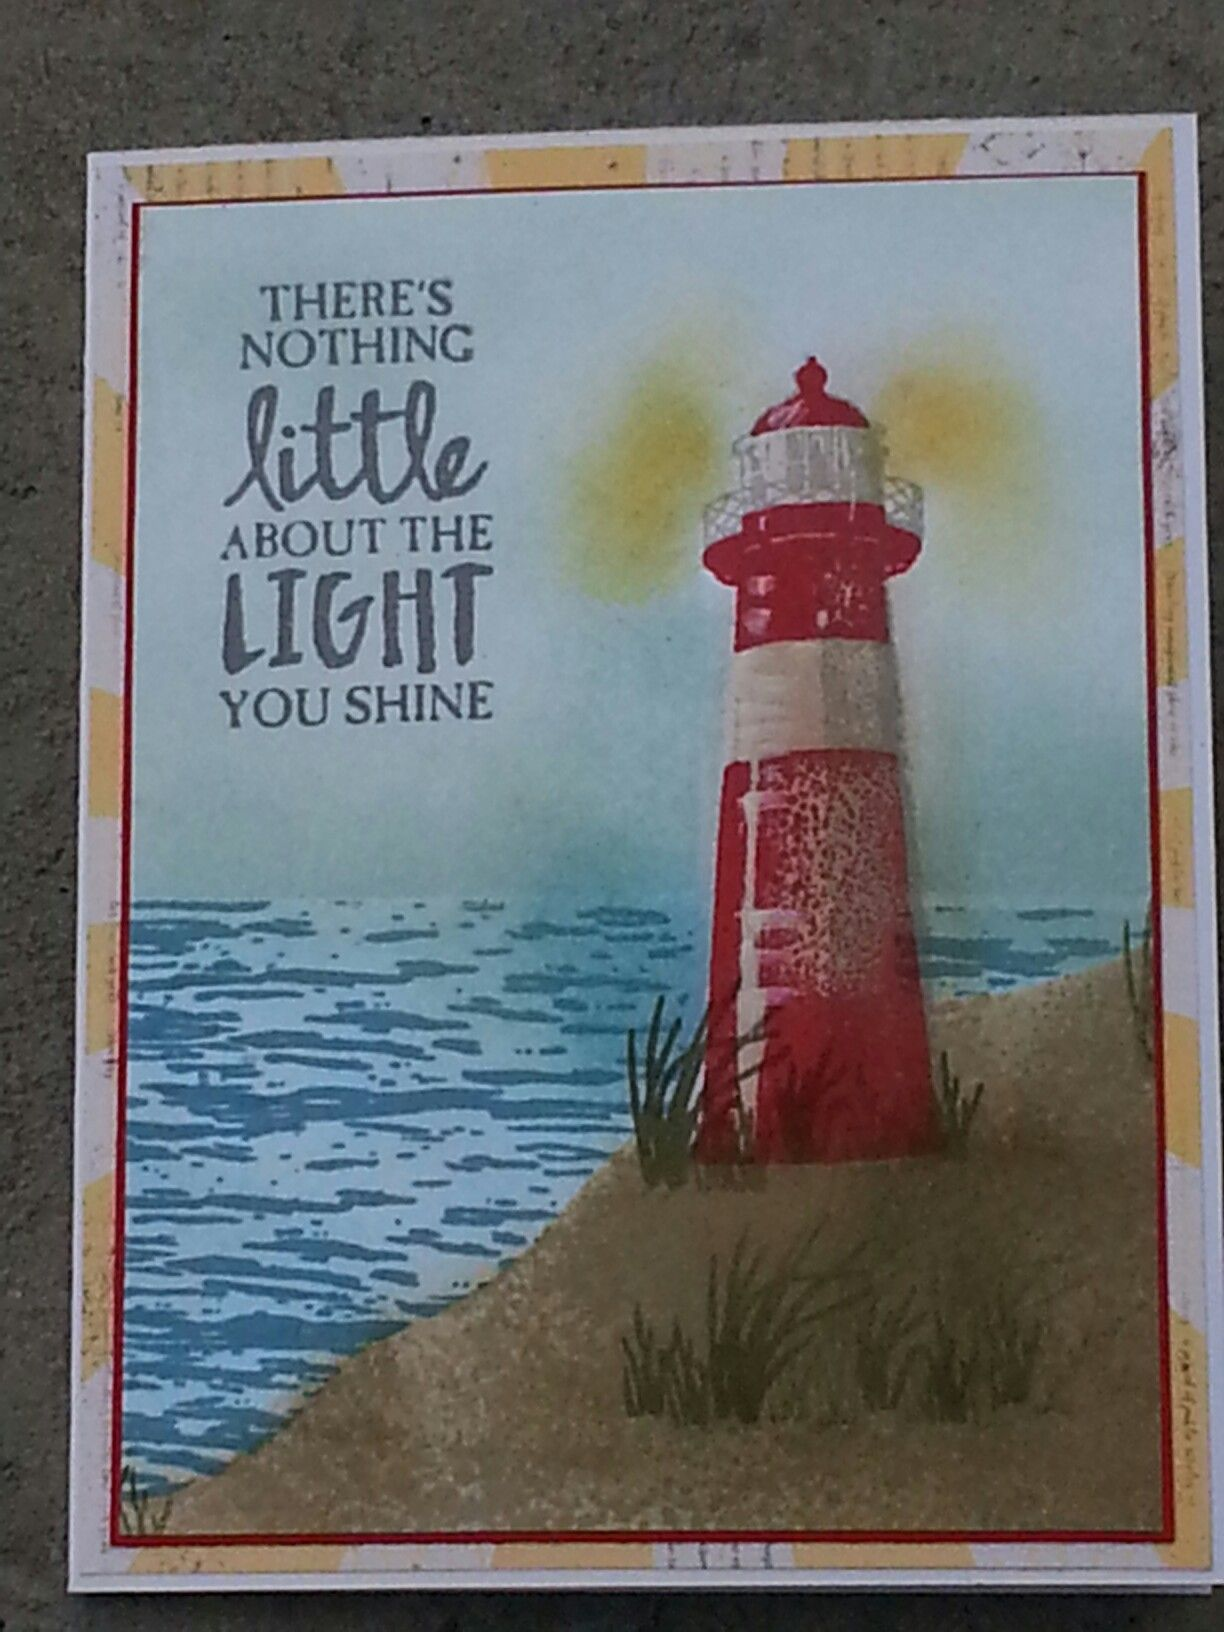 Stampin up occasions 2017 high tide handmade cards stampin up occasions 2017 high tide handmade cards lighthouse kristyandbryce Choice Image